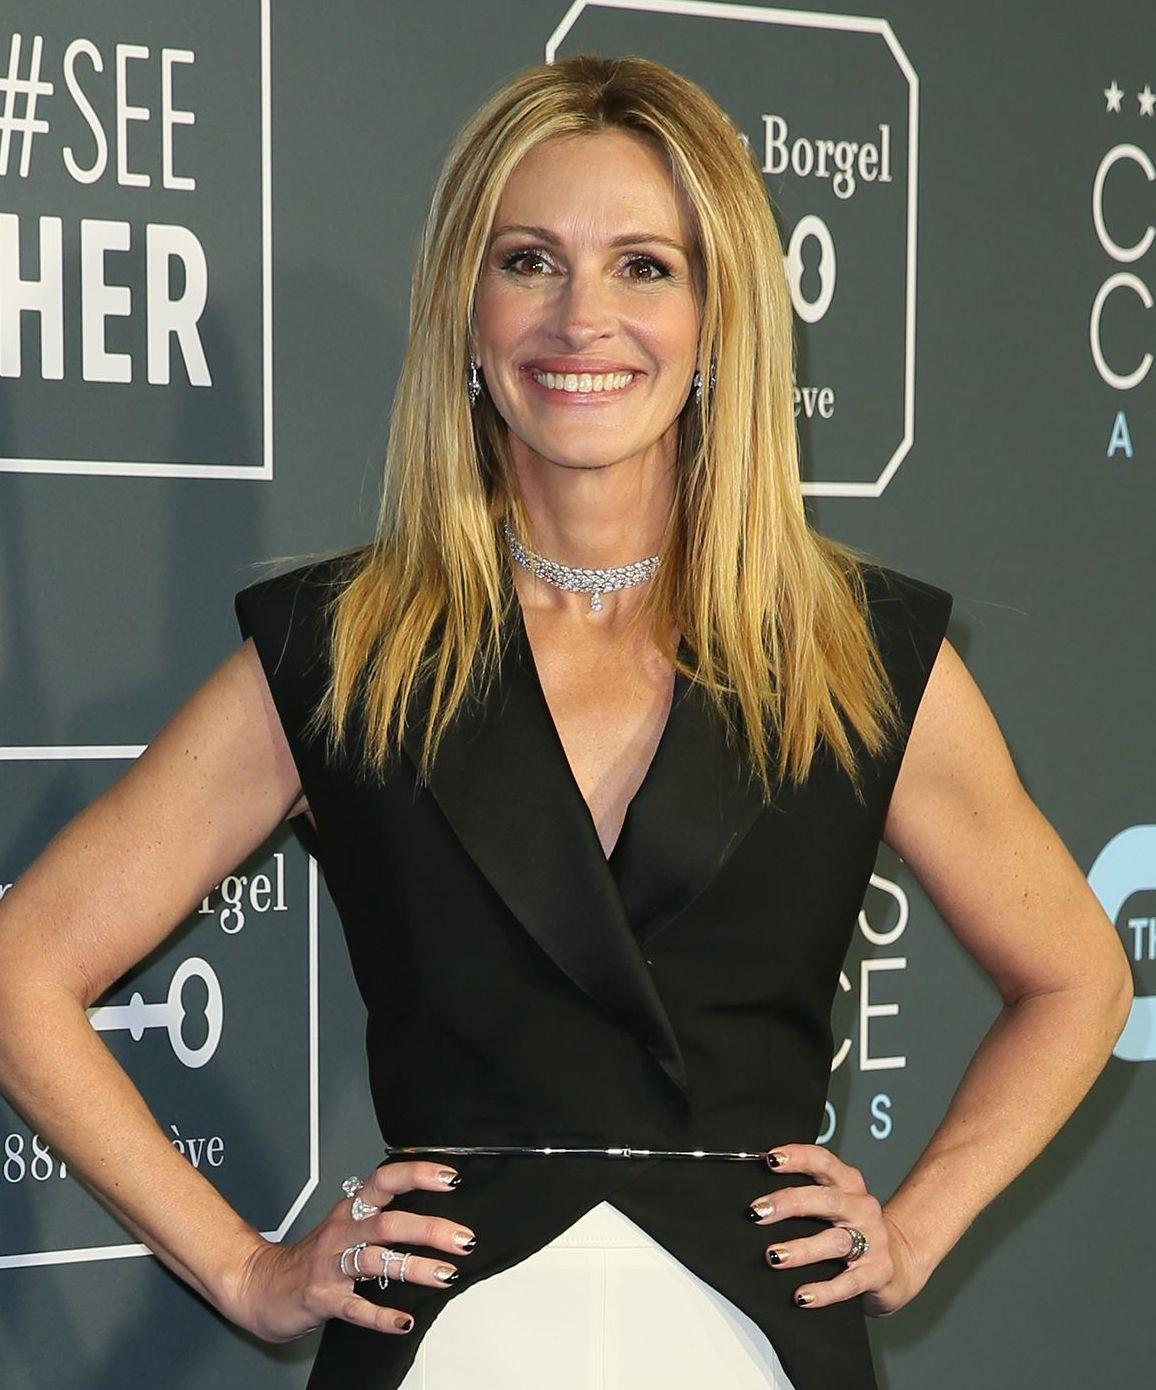 Julia Roberts' video on environment conservation generates buzz again